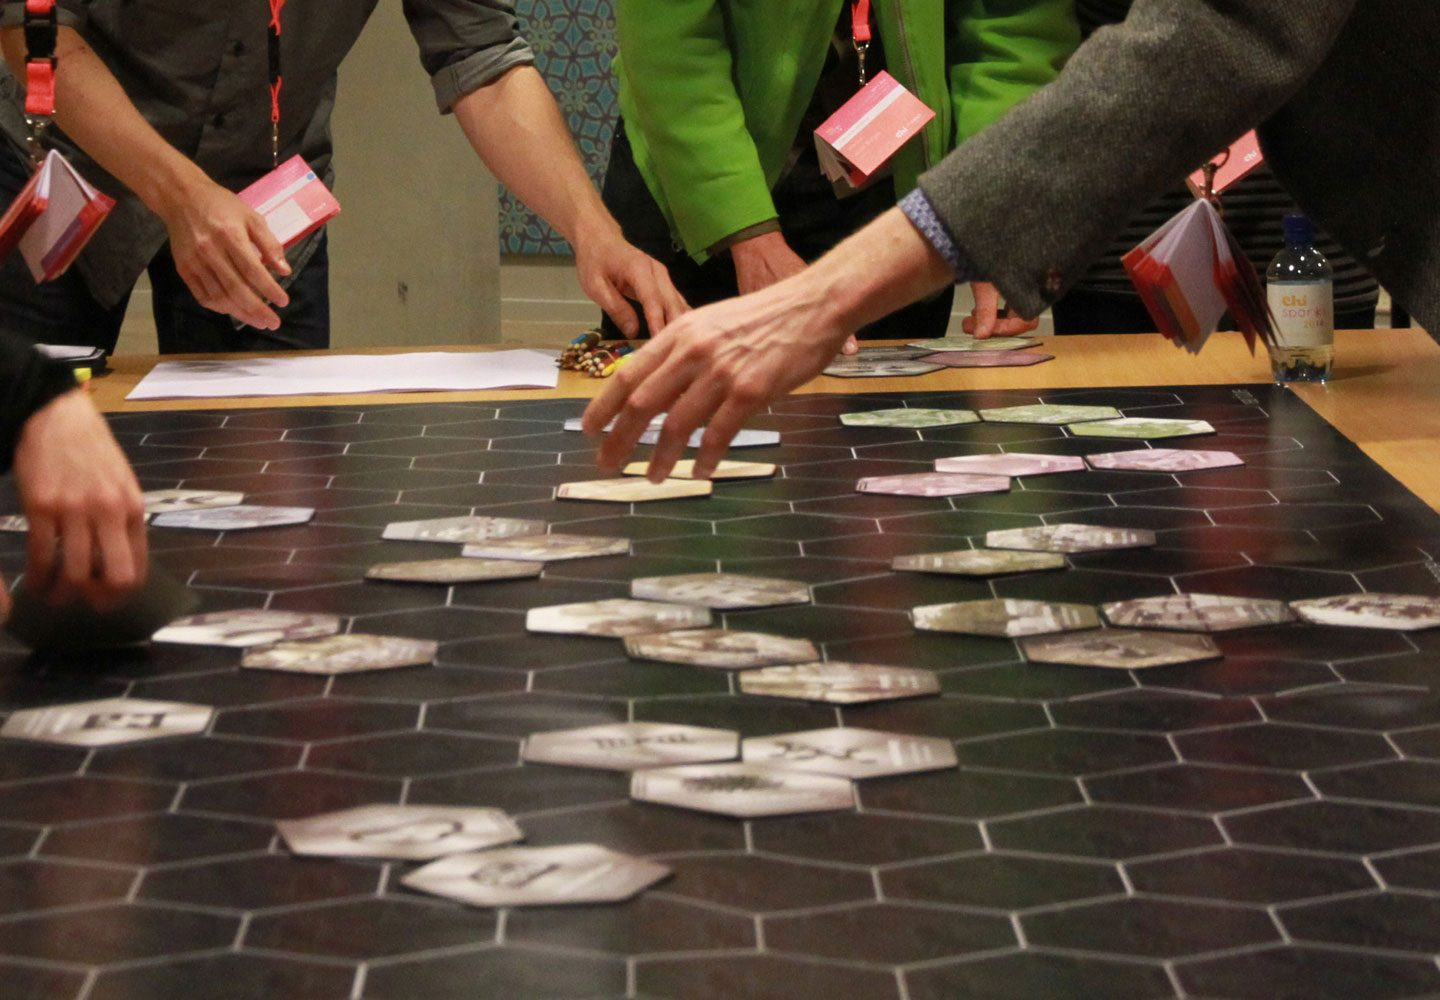 Gamified workshops